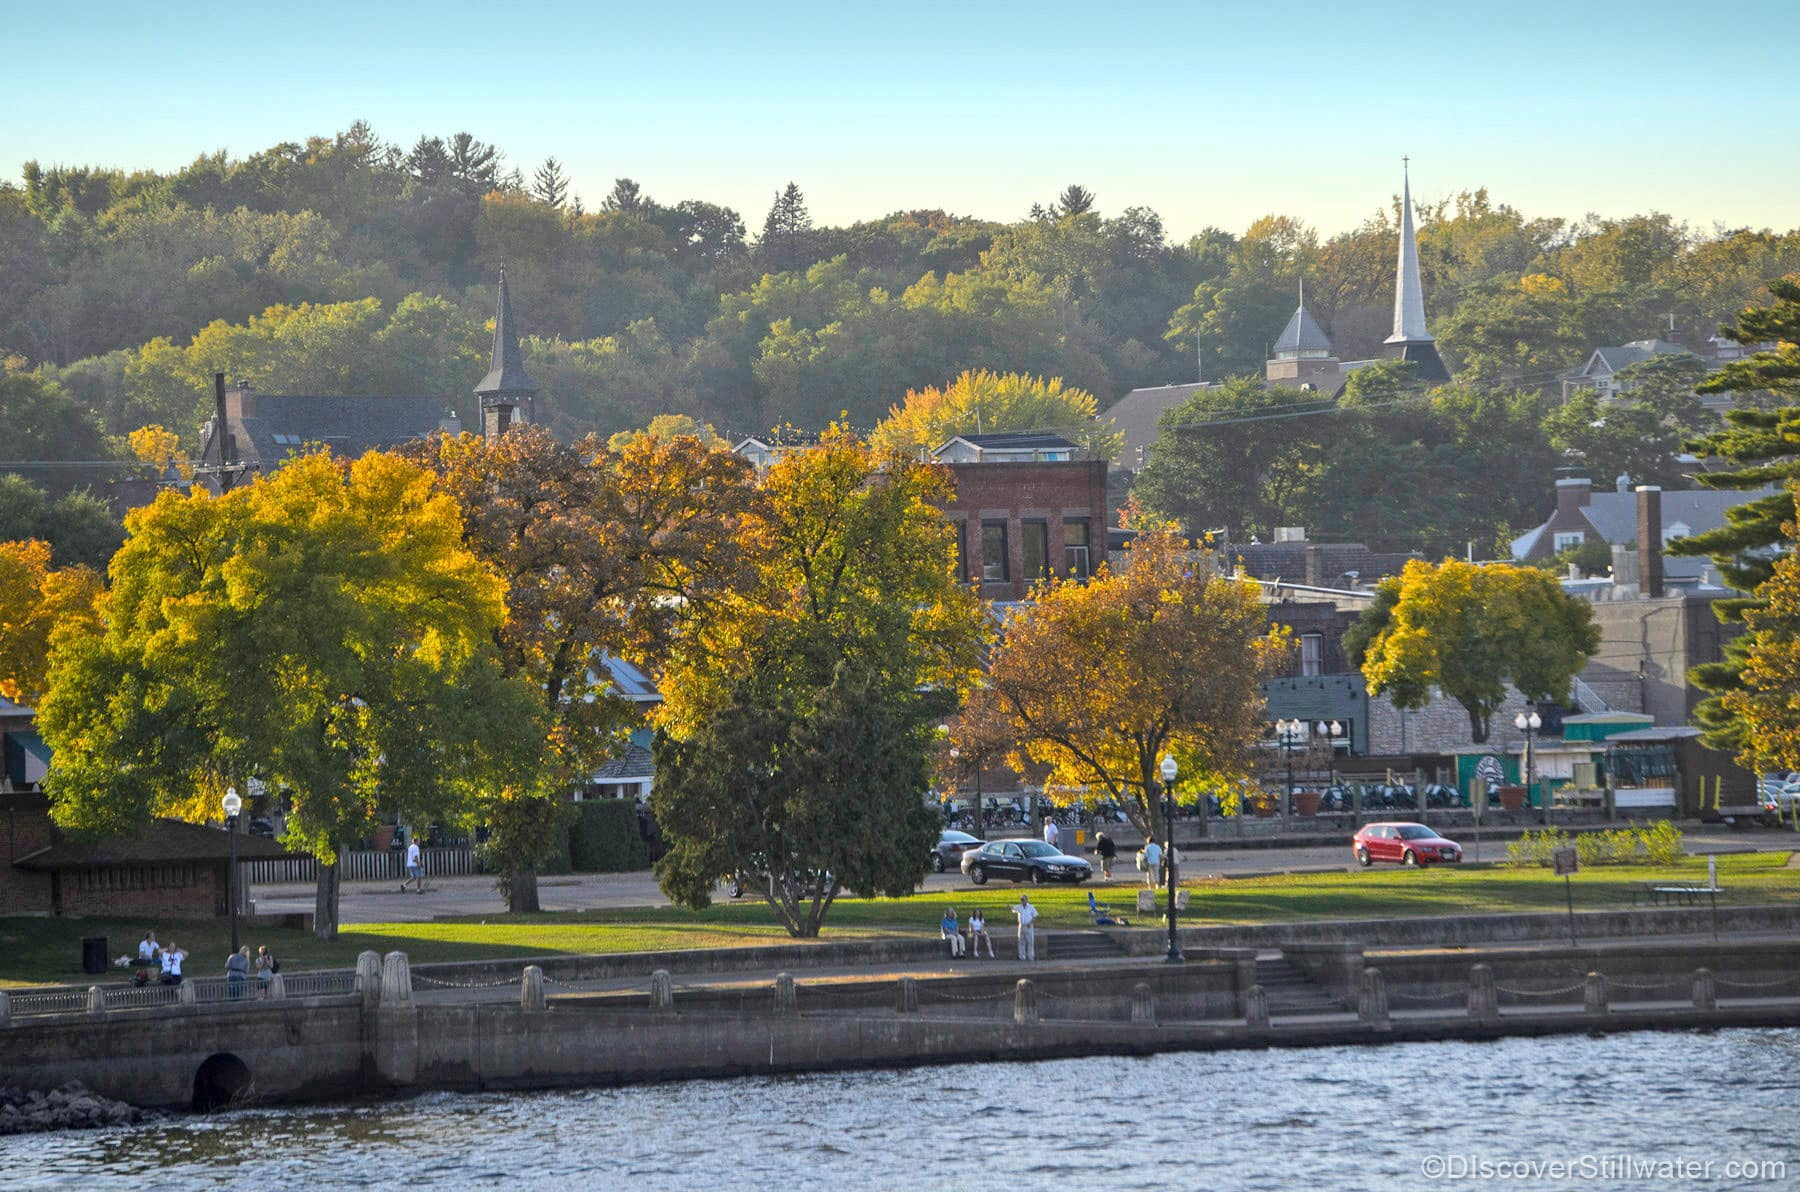 Fall In Love With Stillwater, Minnesota